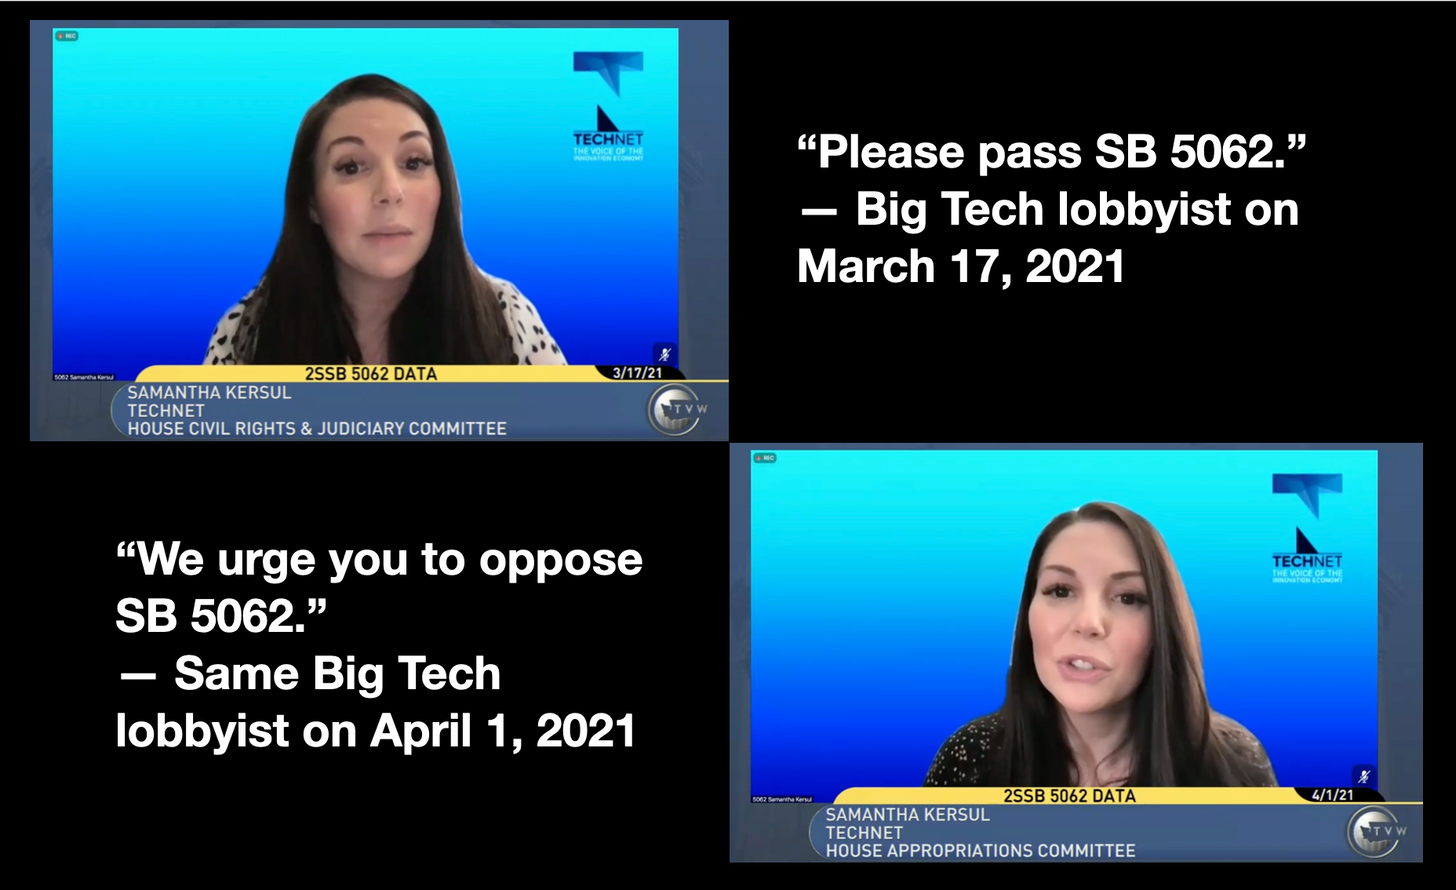 """A picture of a woman speaking.  """"Please pass SB 5062"""" -- Big Tech lobbyist on March 12, 201.  """"We urge you to oppose SB 5062.""""  - Same Big Tech Lobbyist on April 1, 2021"""